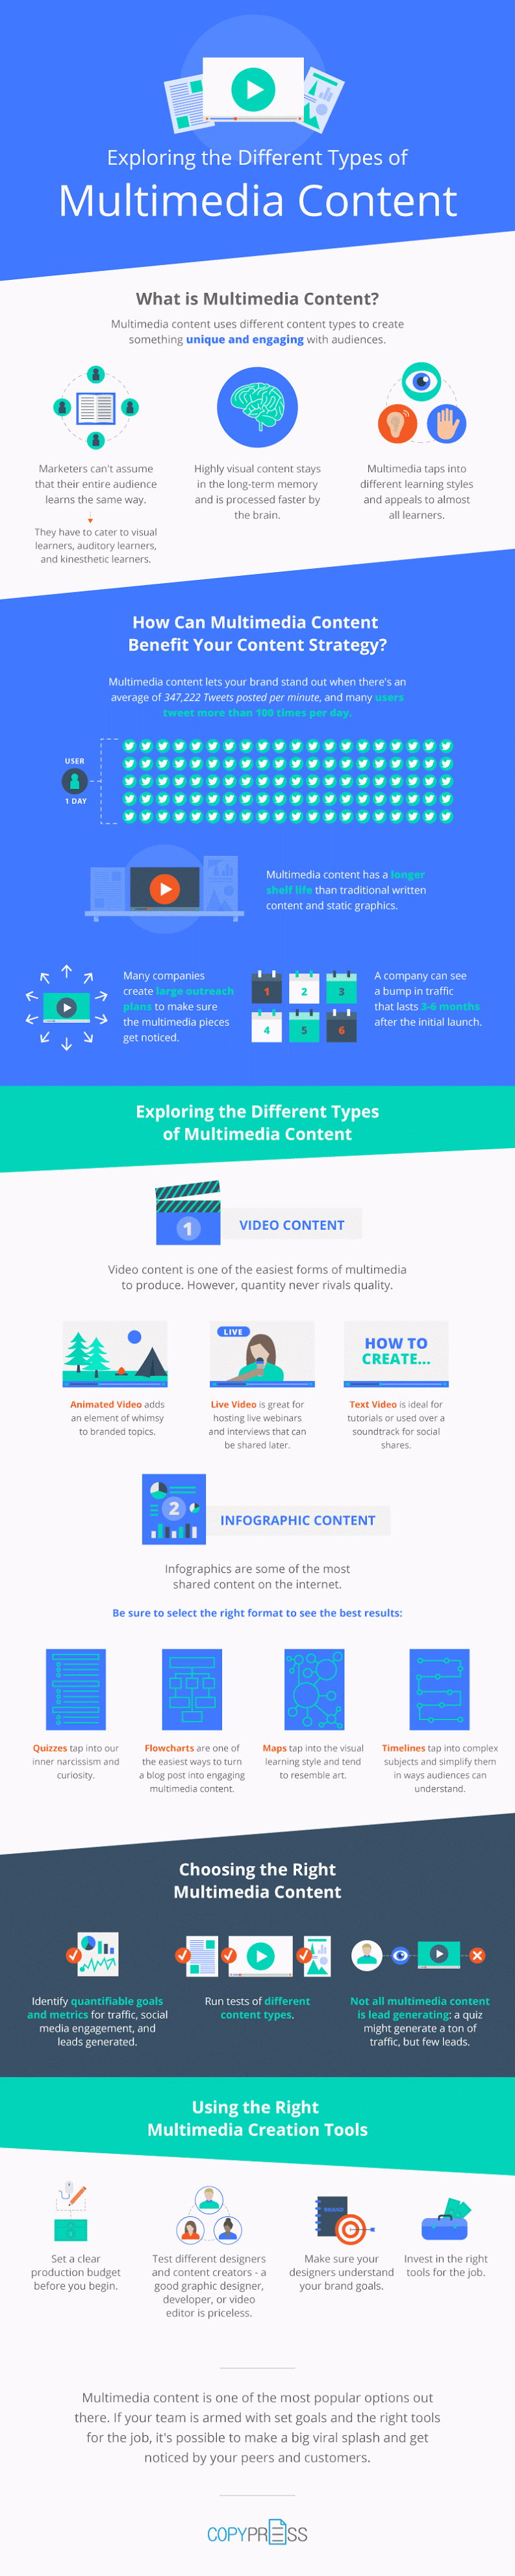 Exploring the Different Types of Multimedia Content - infographic